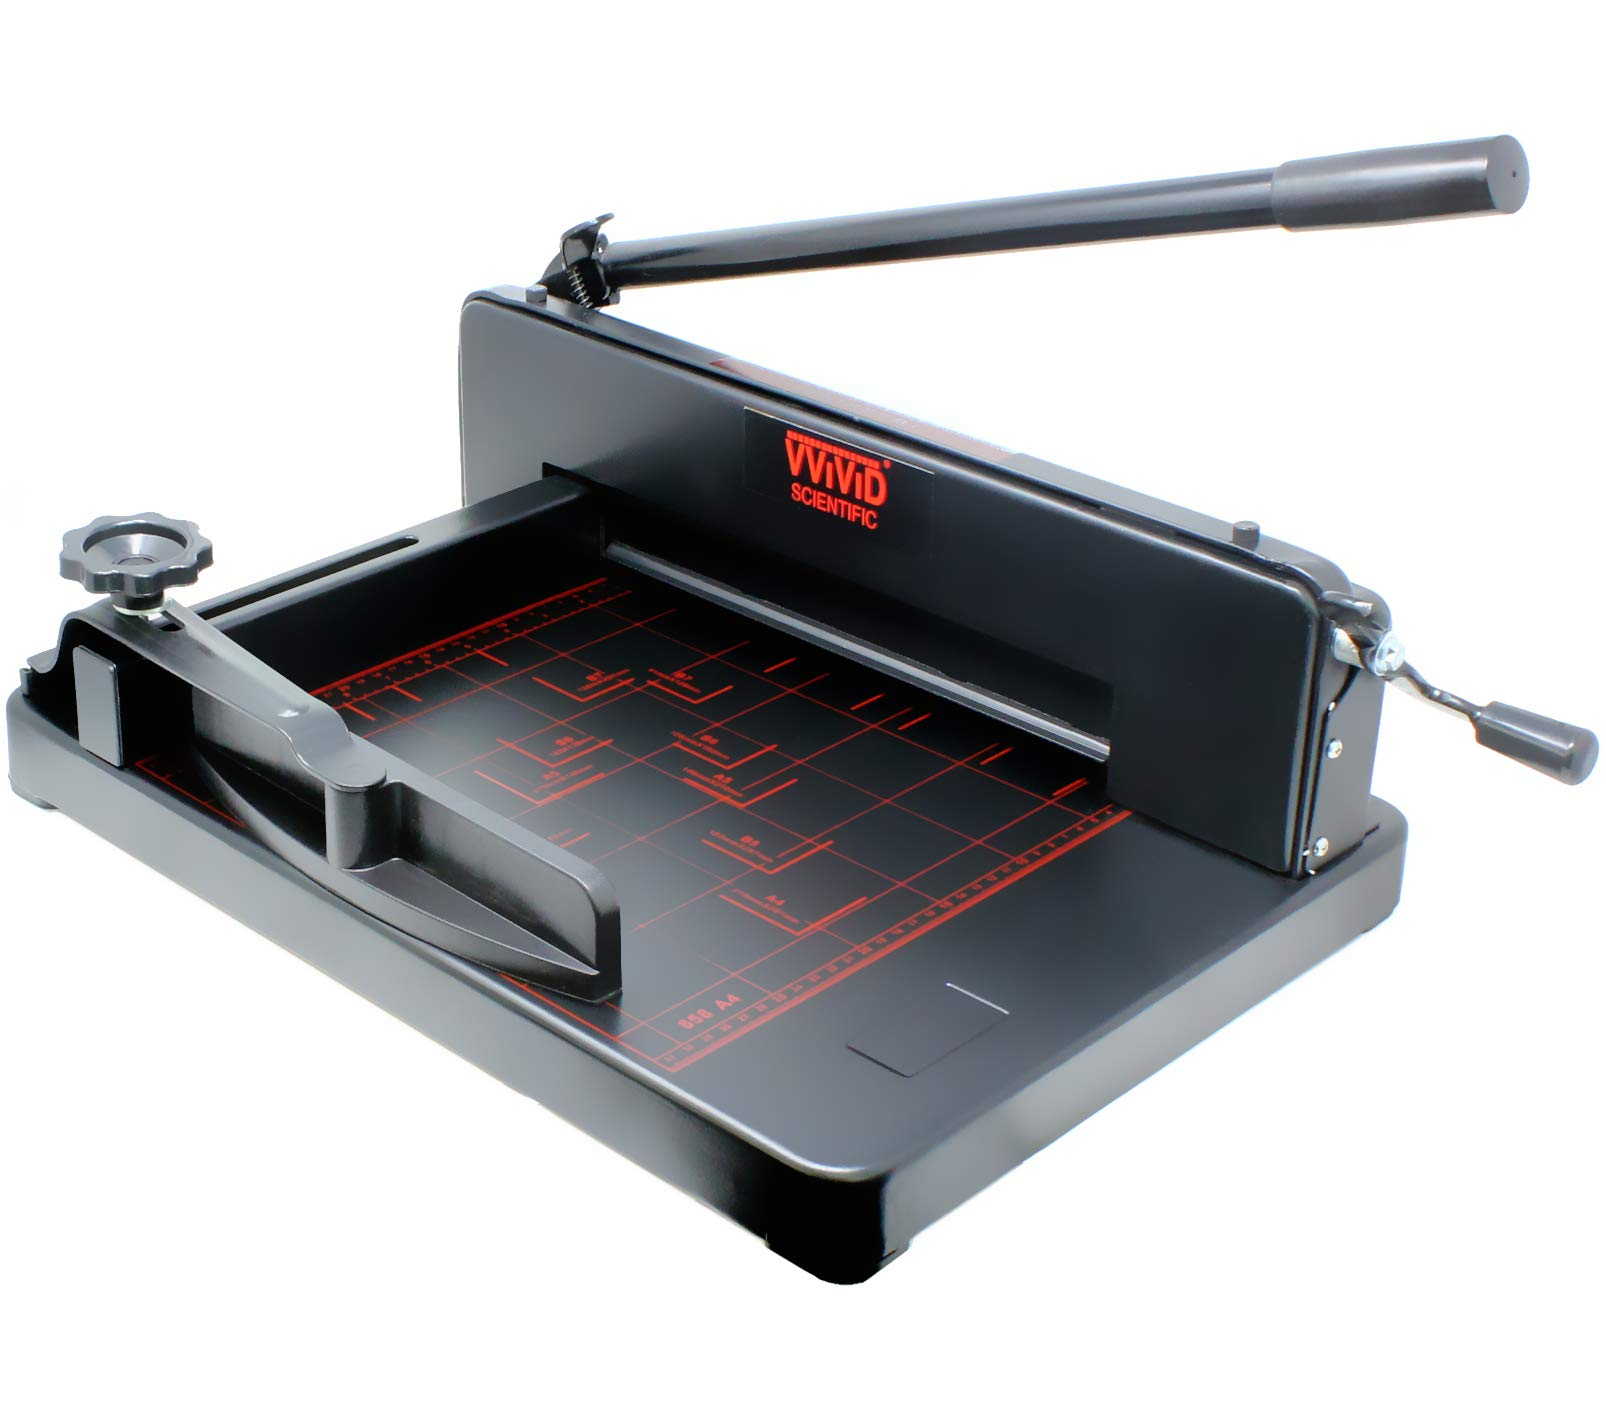 VViViD Heavy-Duty Commercial Grade Industrial Stack 14.5'' Railed Blade Paper Cutter by VViViD